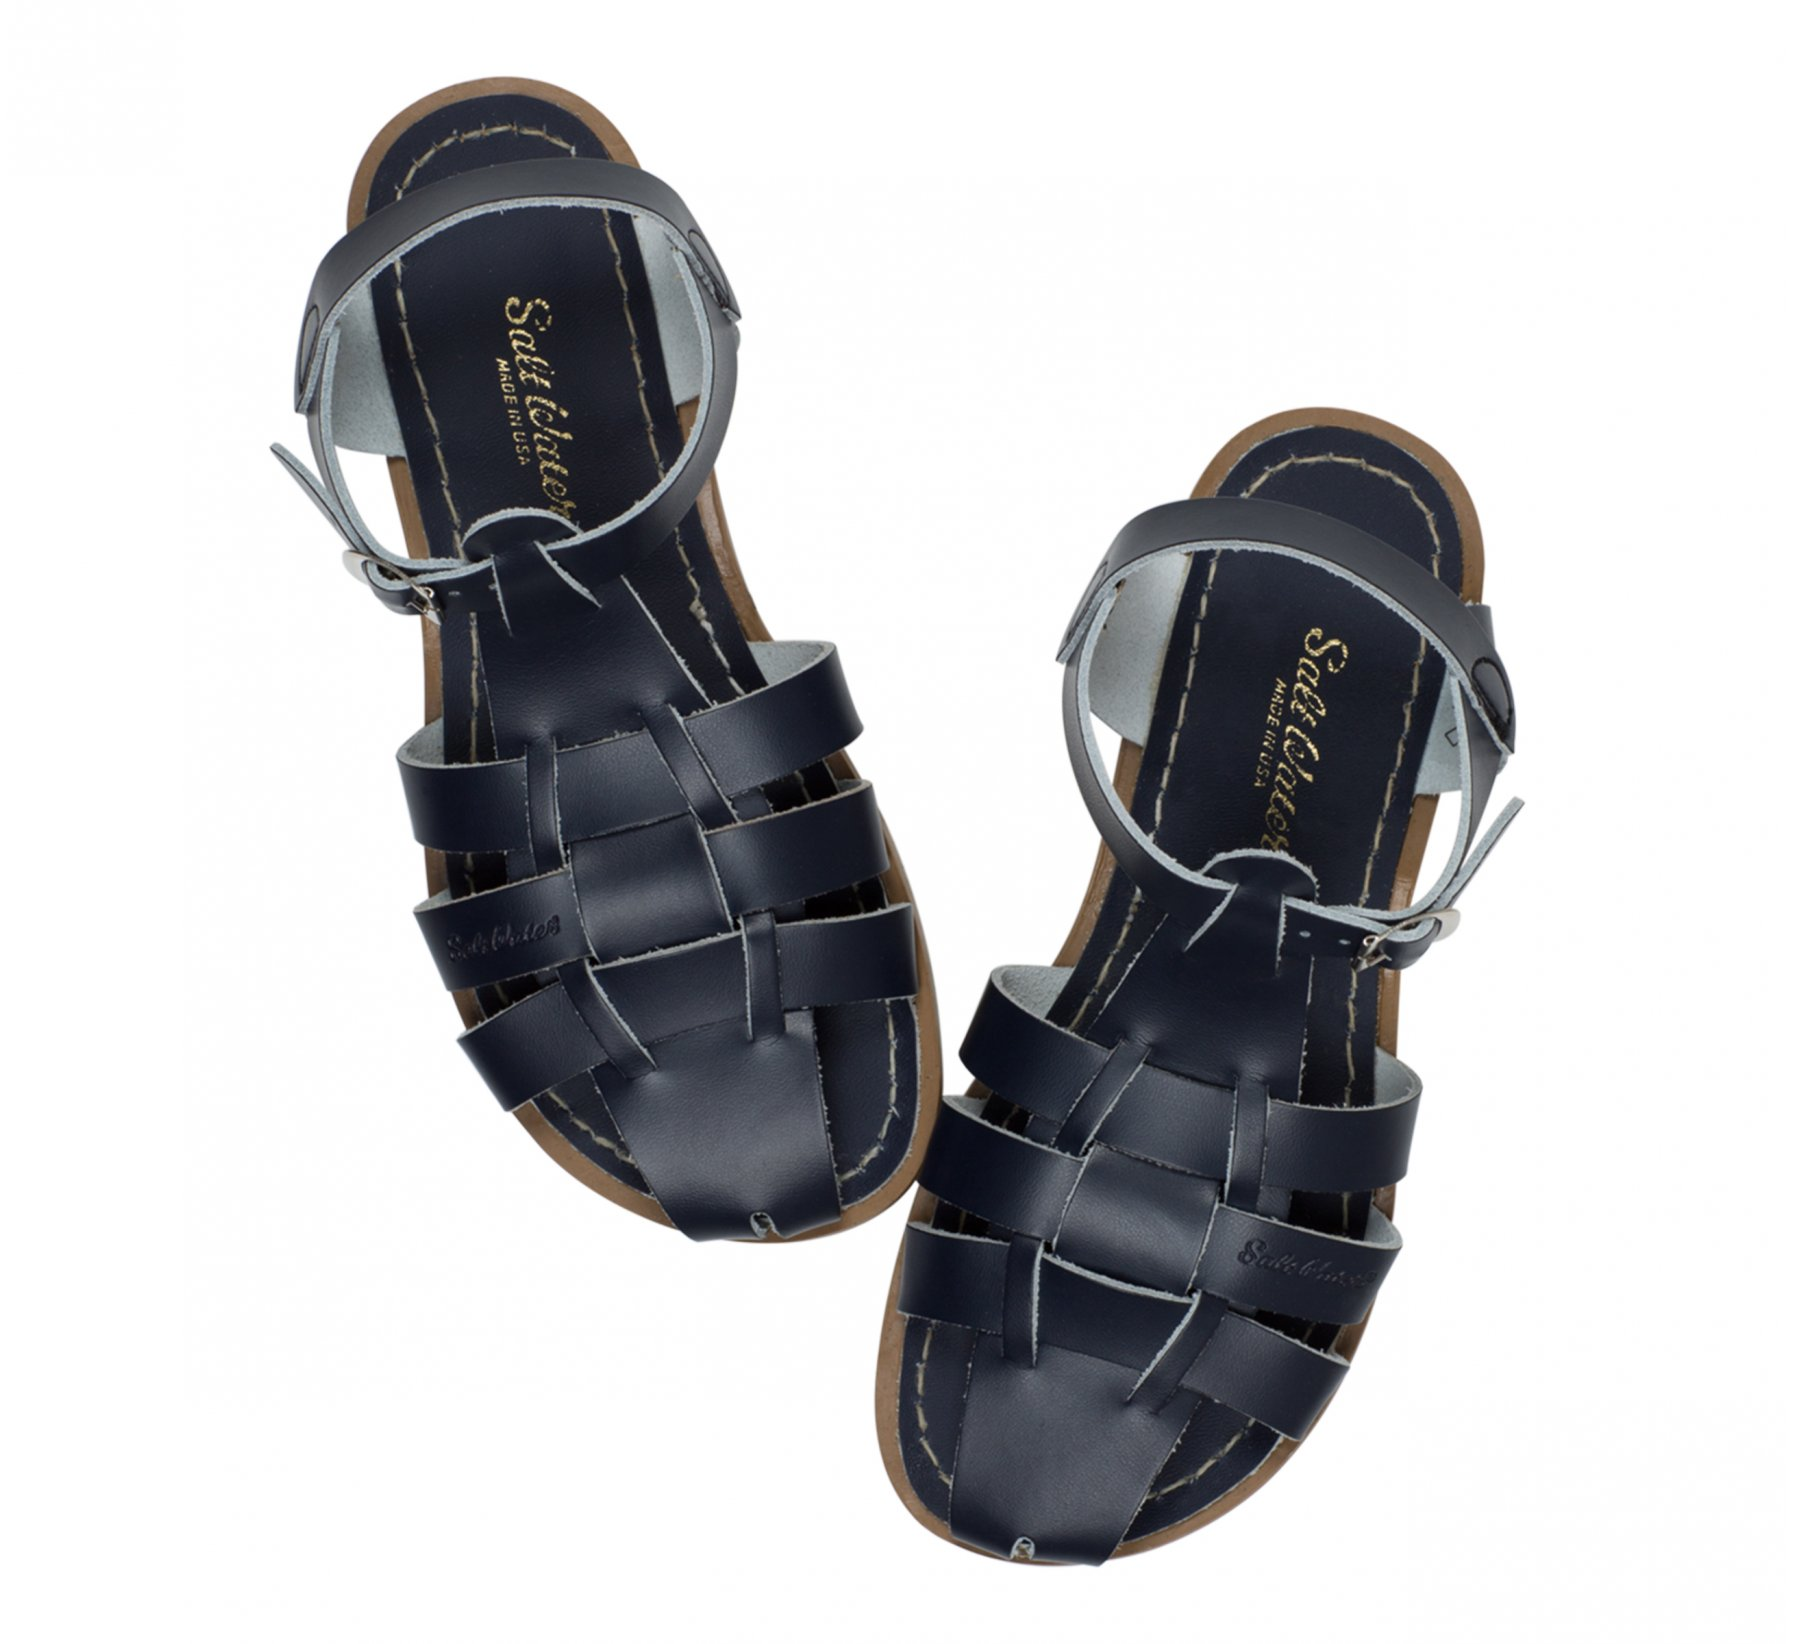 Shark Original in Marineblau - Salt Water Sandals